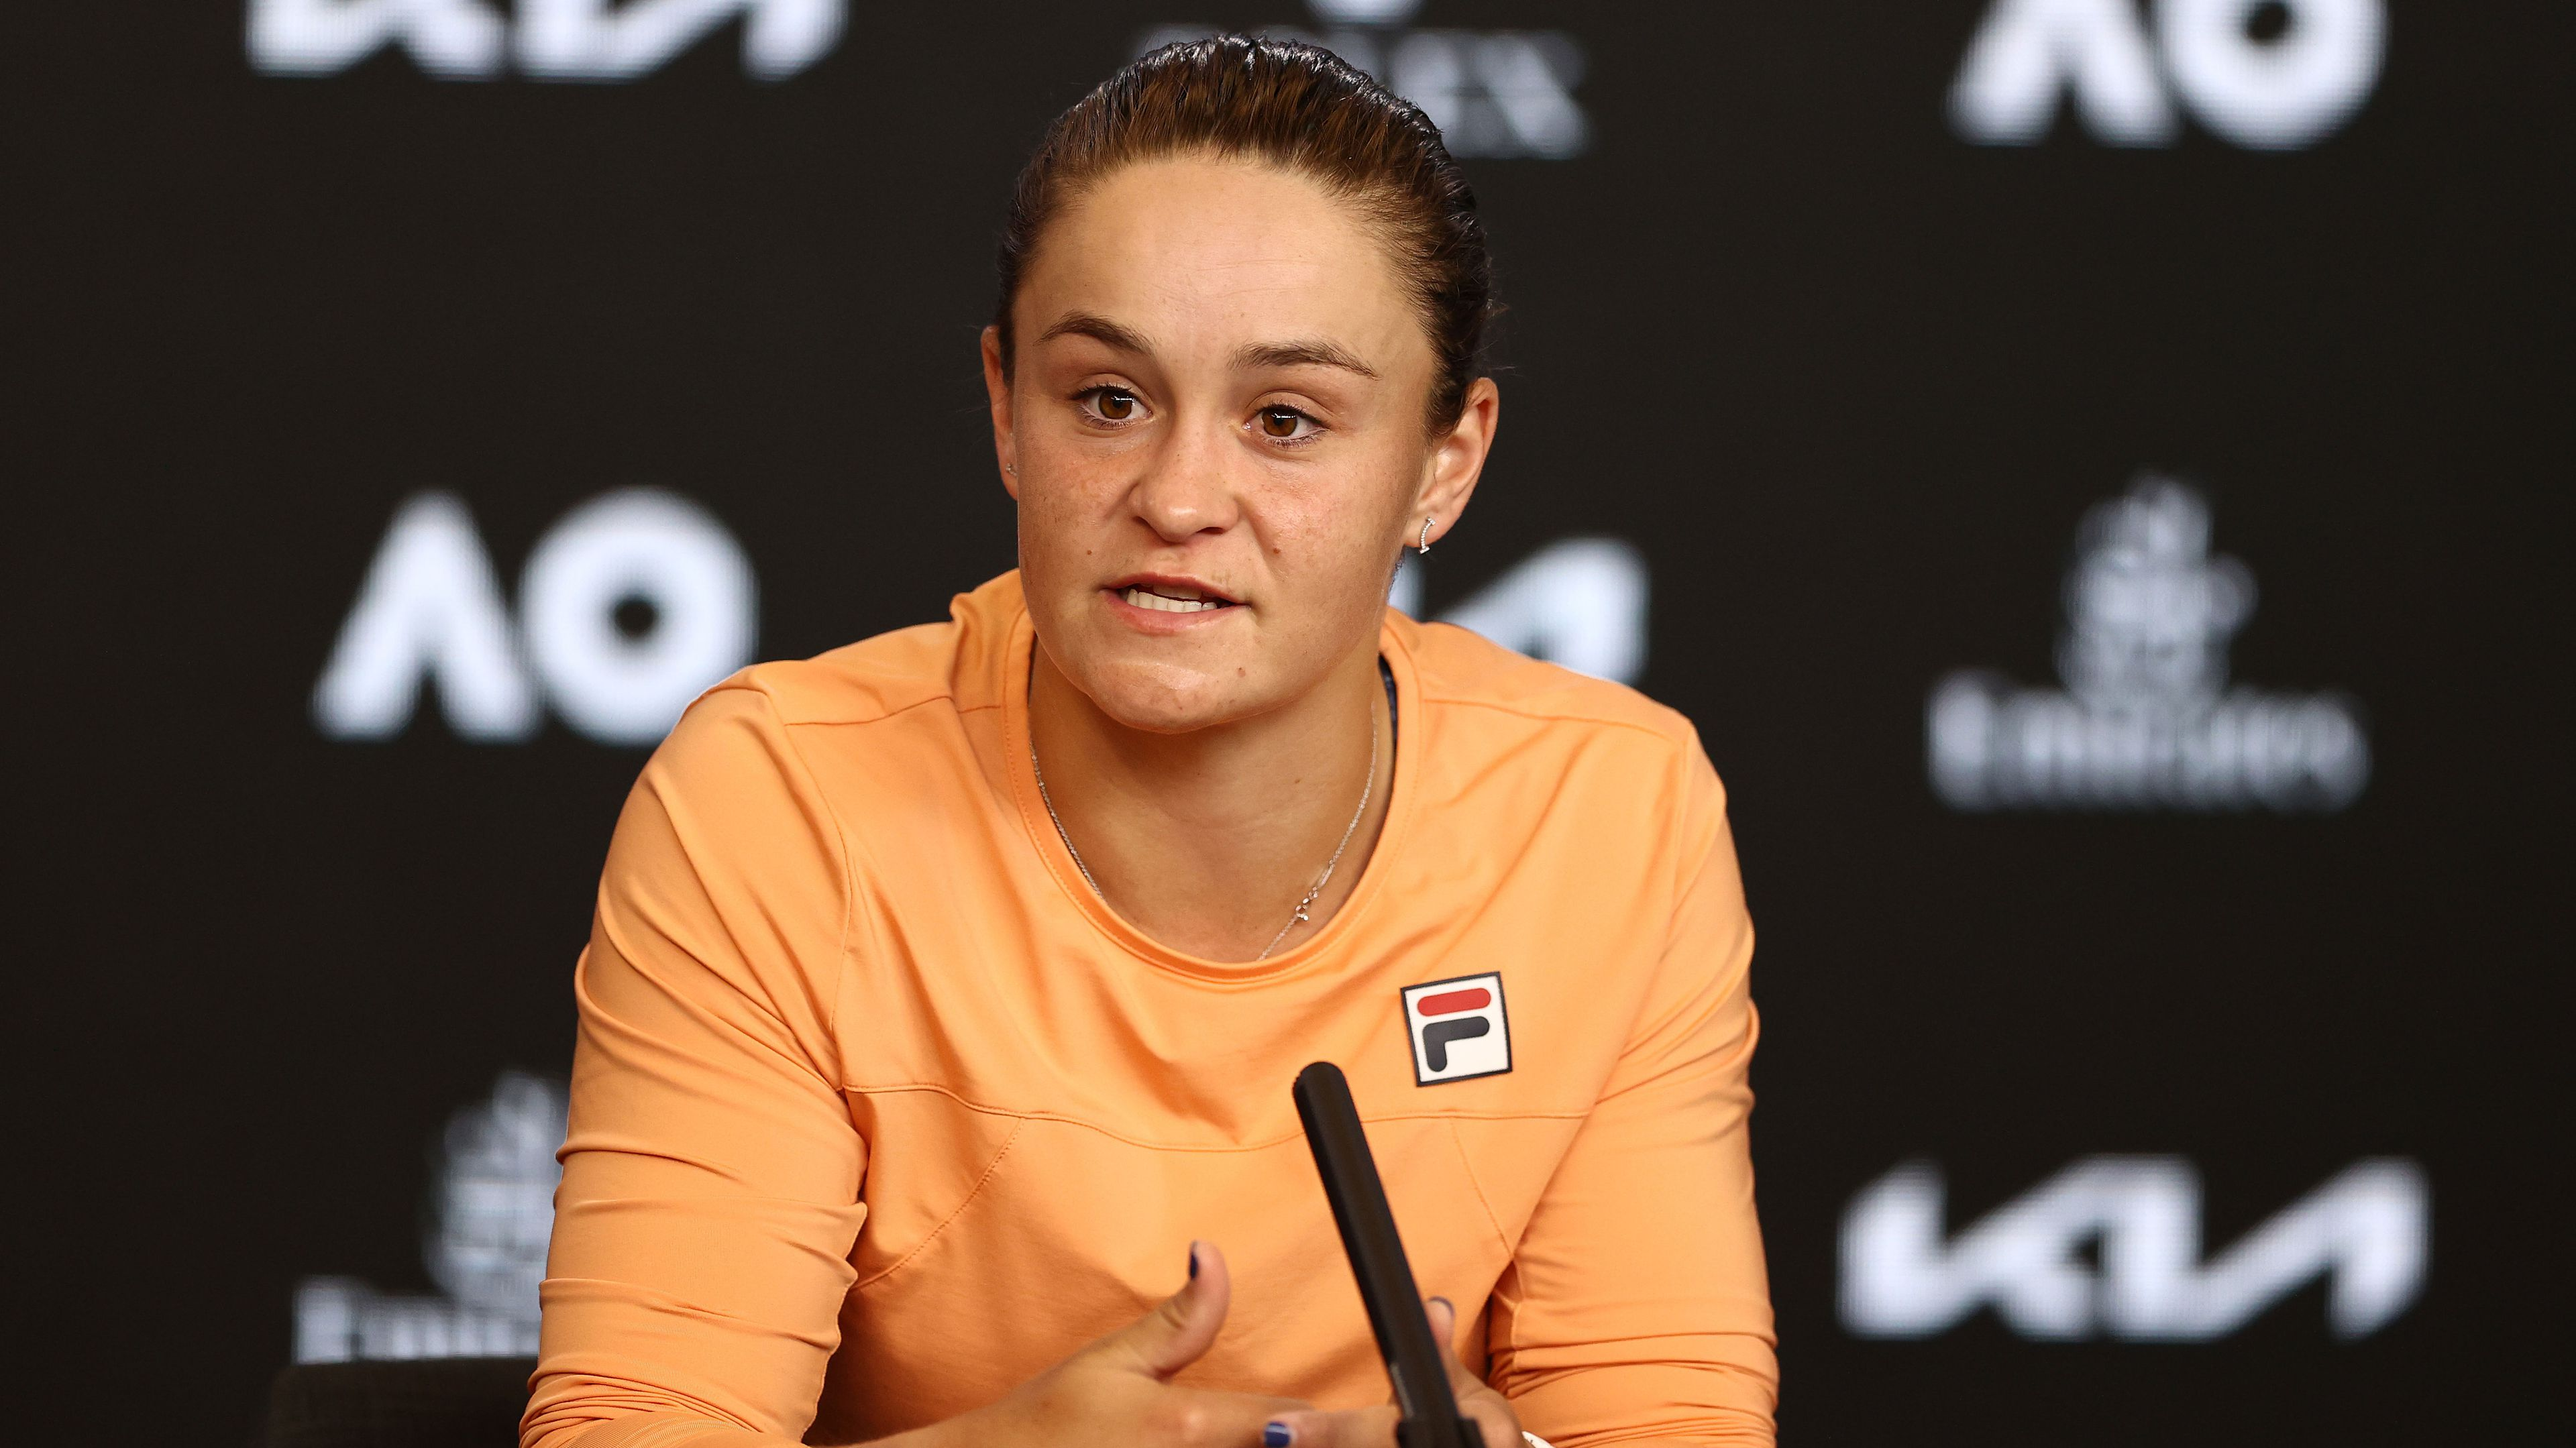 Ash Barty talks about her Australian Open quarter-final loss in her press conference.